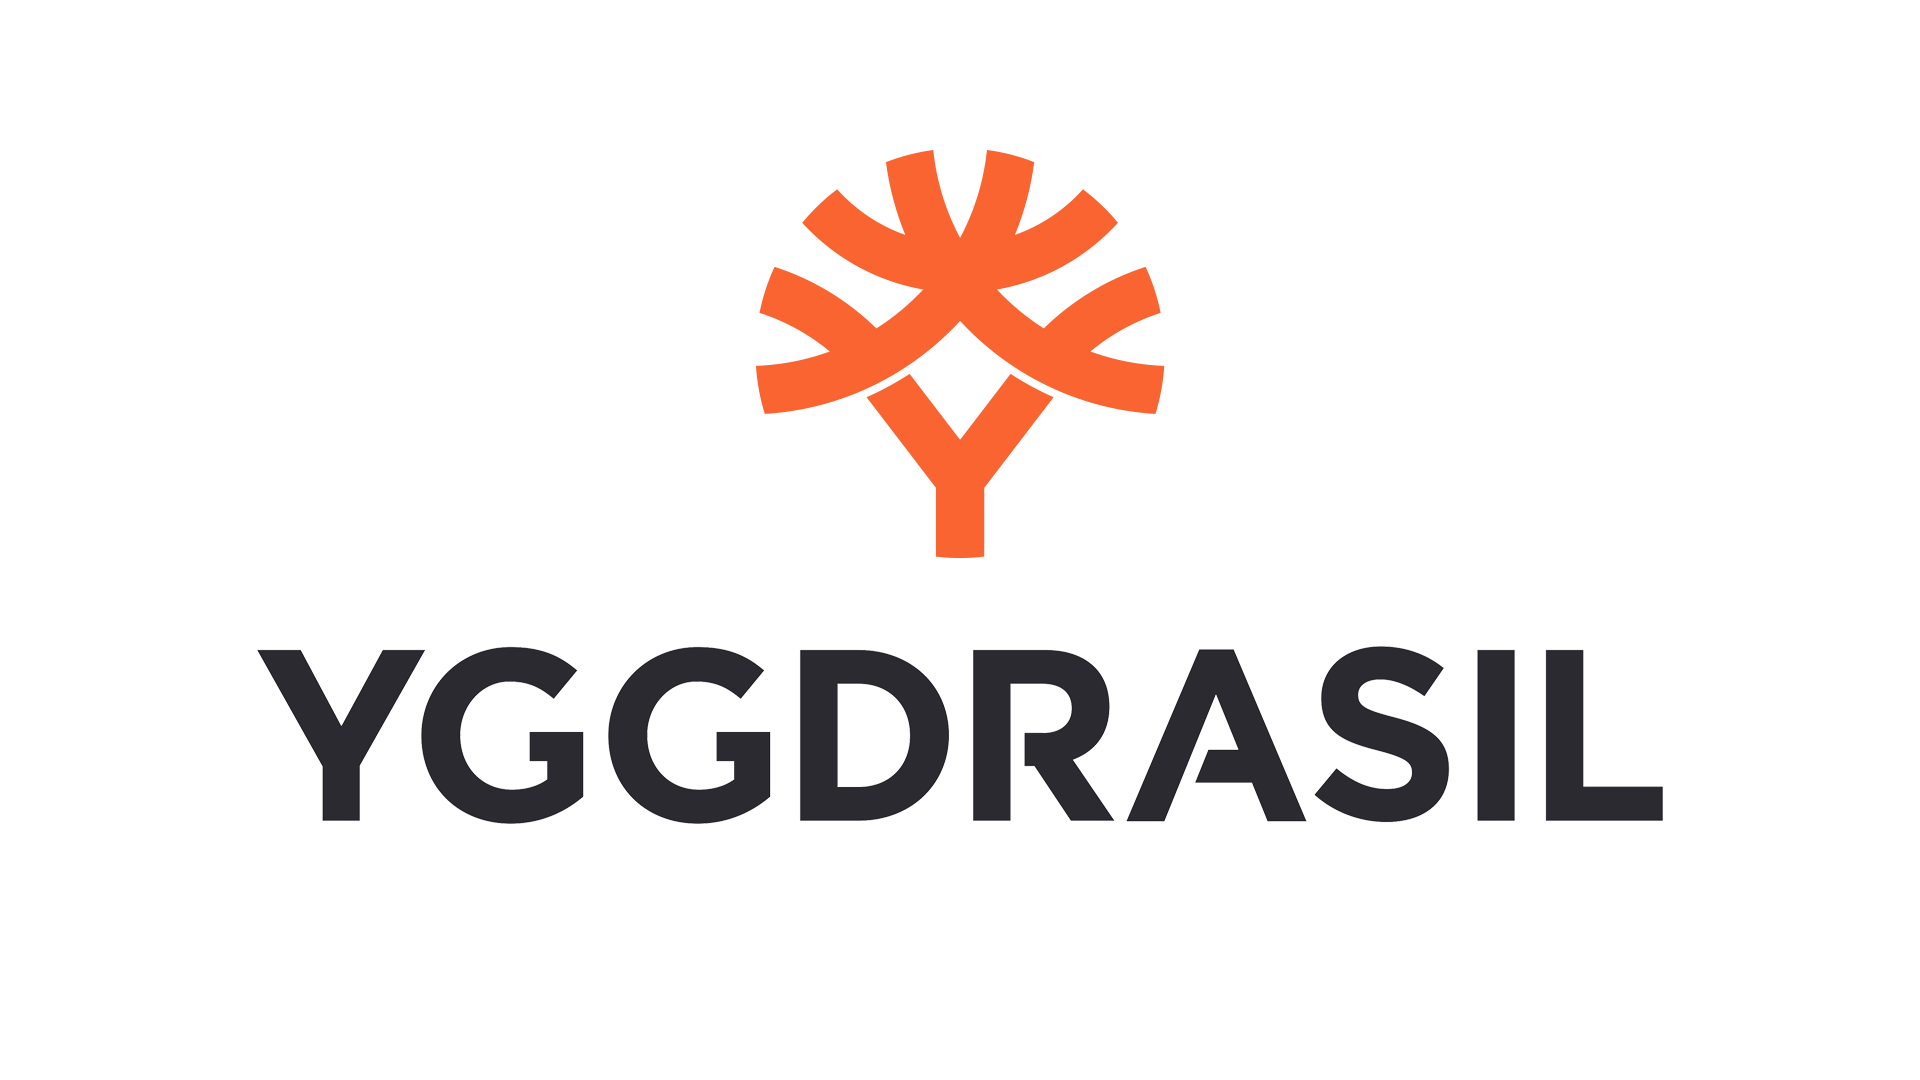 Yggdrasil Migrates to Google Cloud